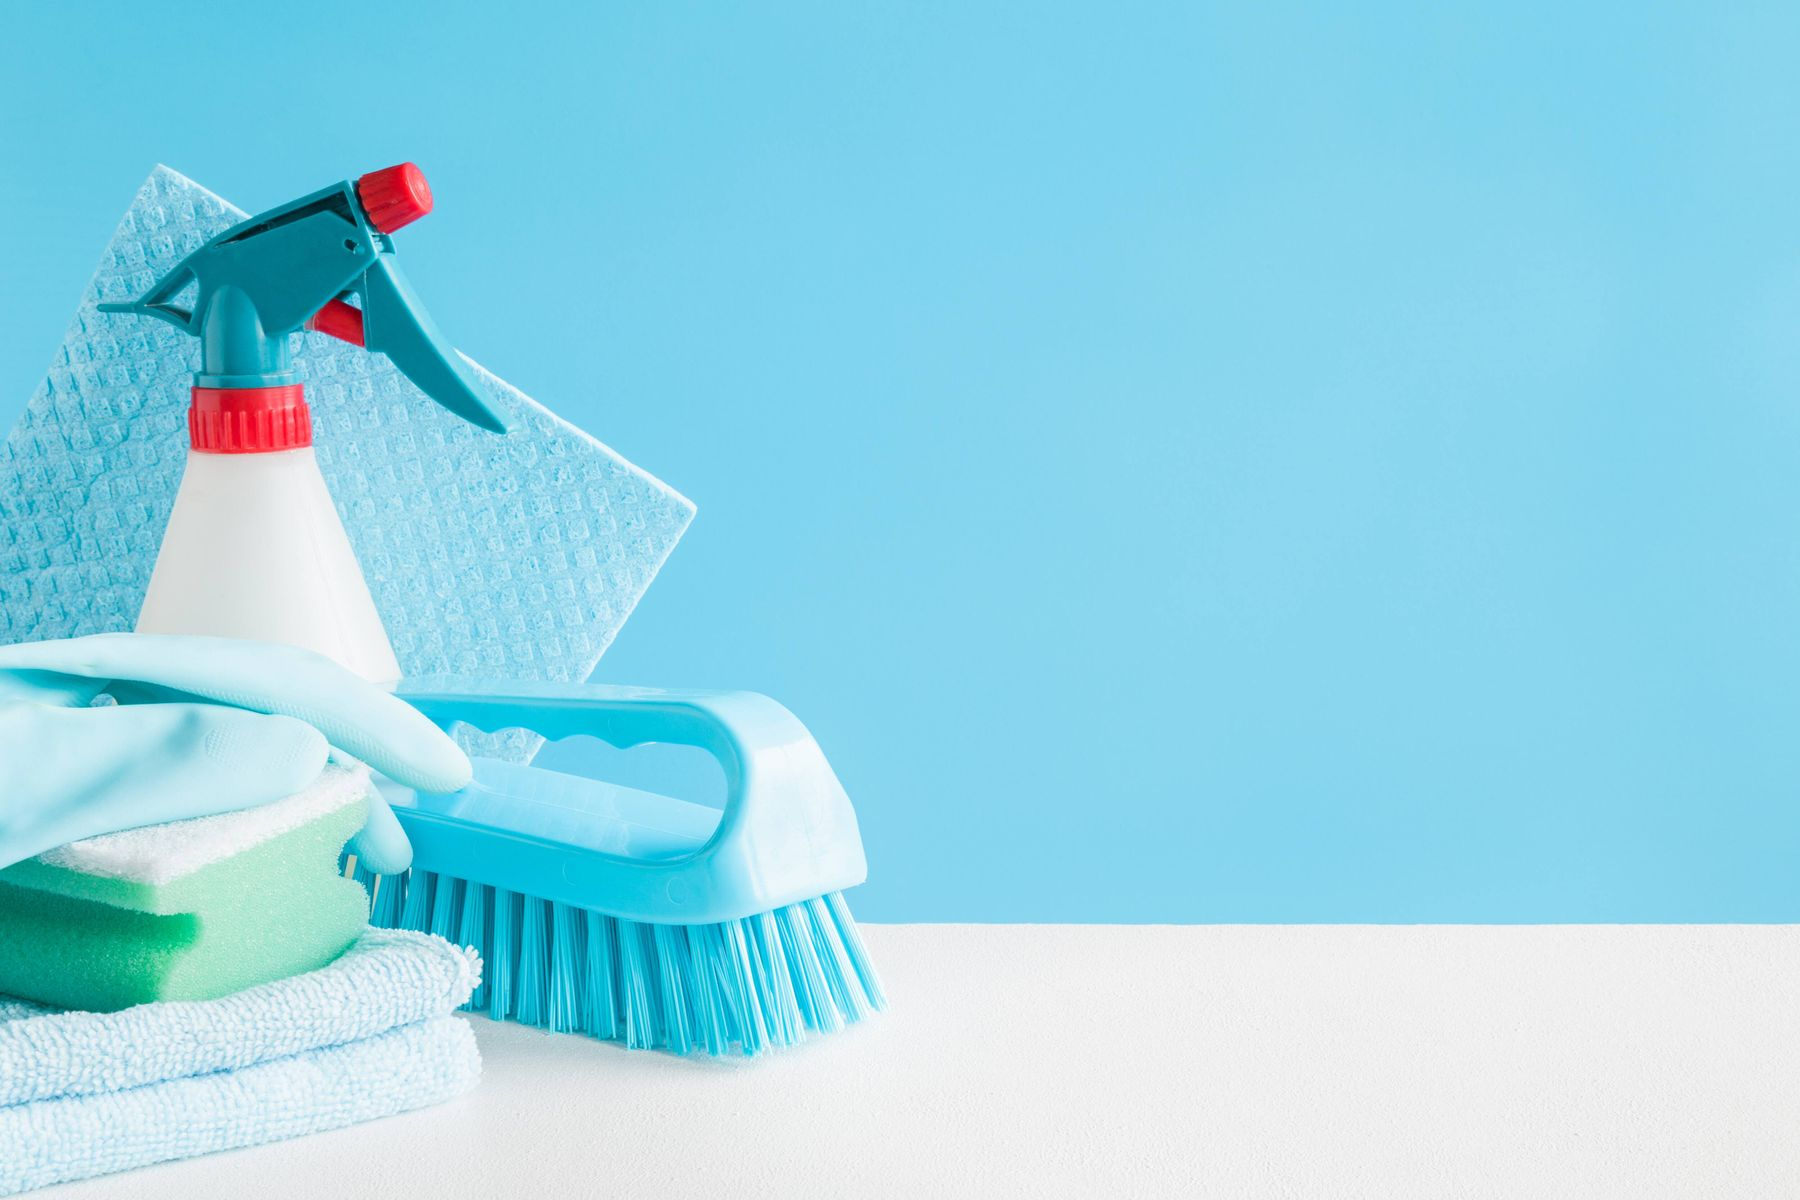 5 household chores guaranteed to boost your mood